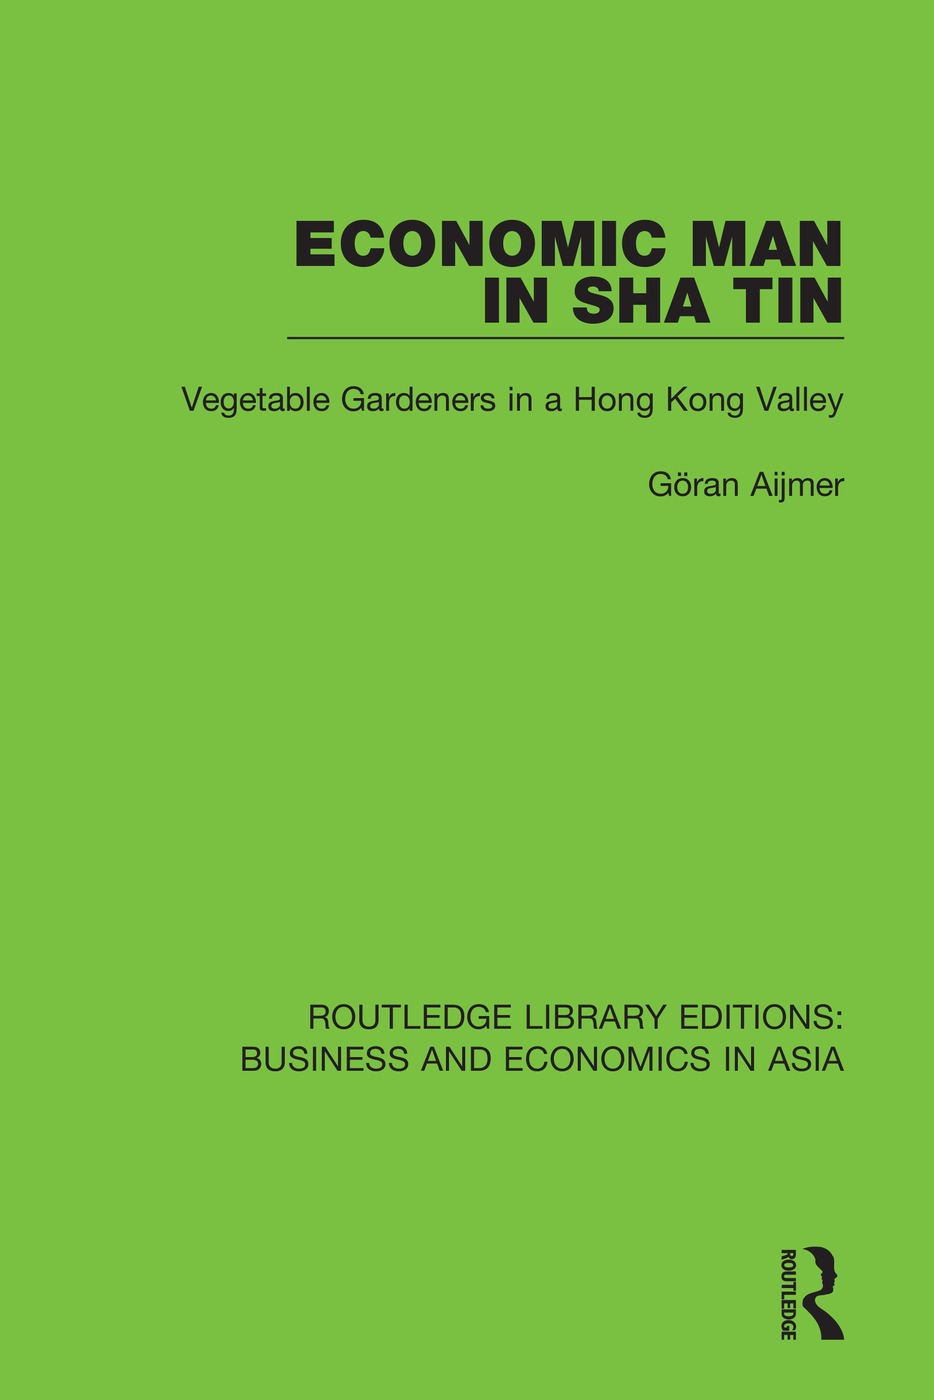 Economic Man in Sha Tin: Vegetable Gardeners in a Hong Kong Valley book cover